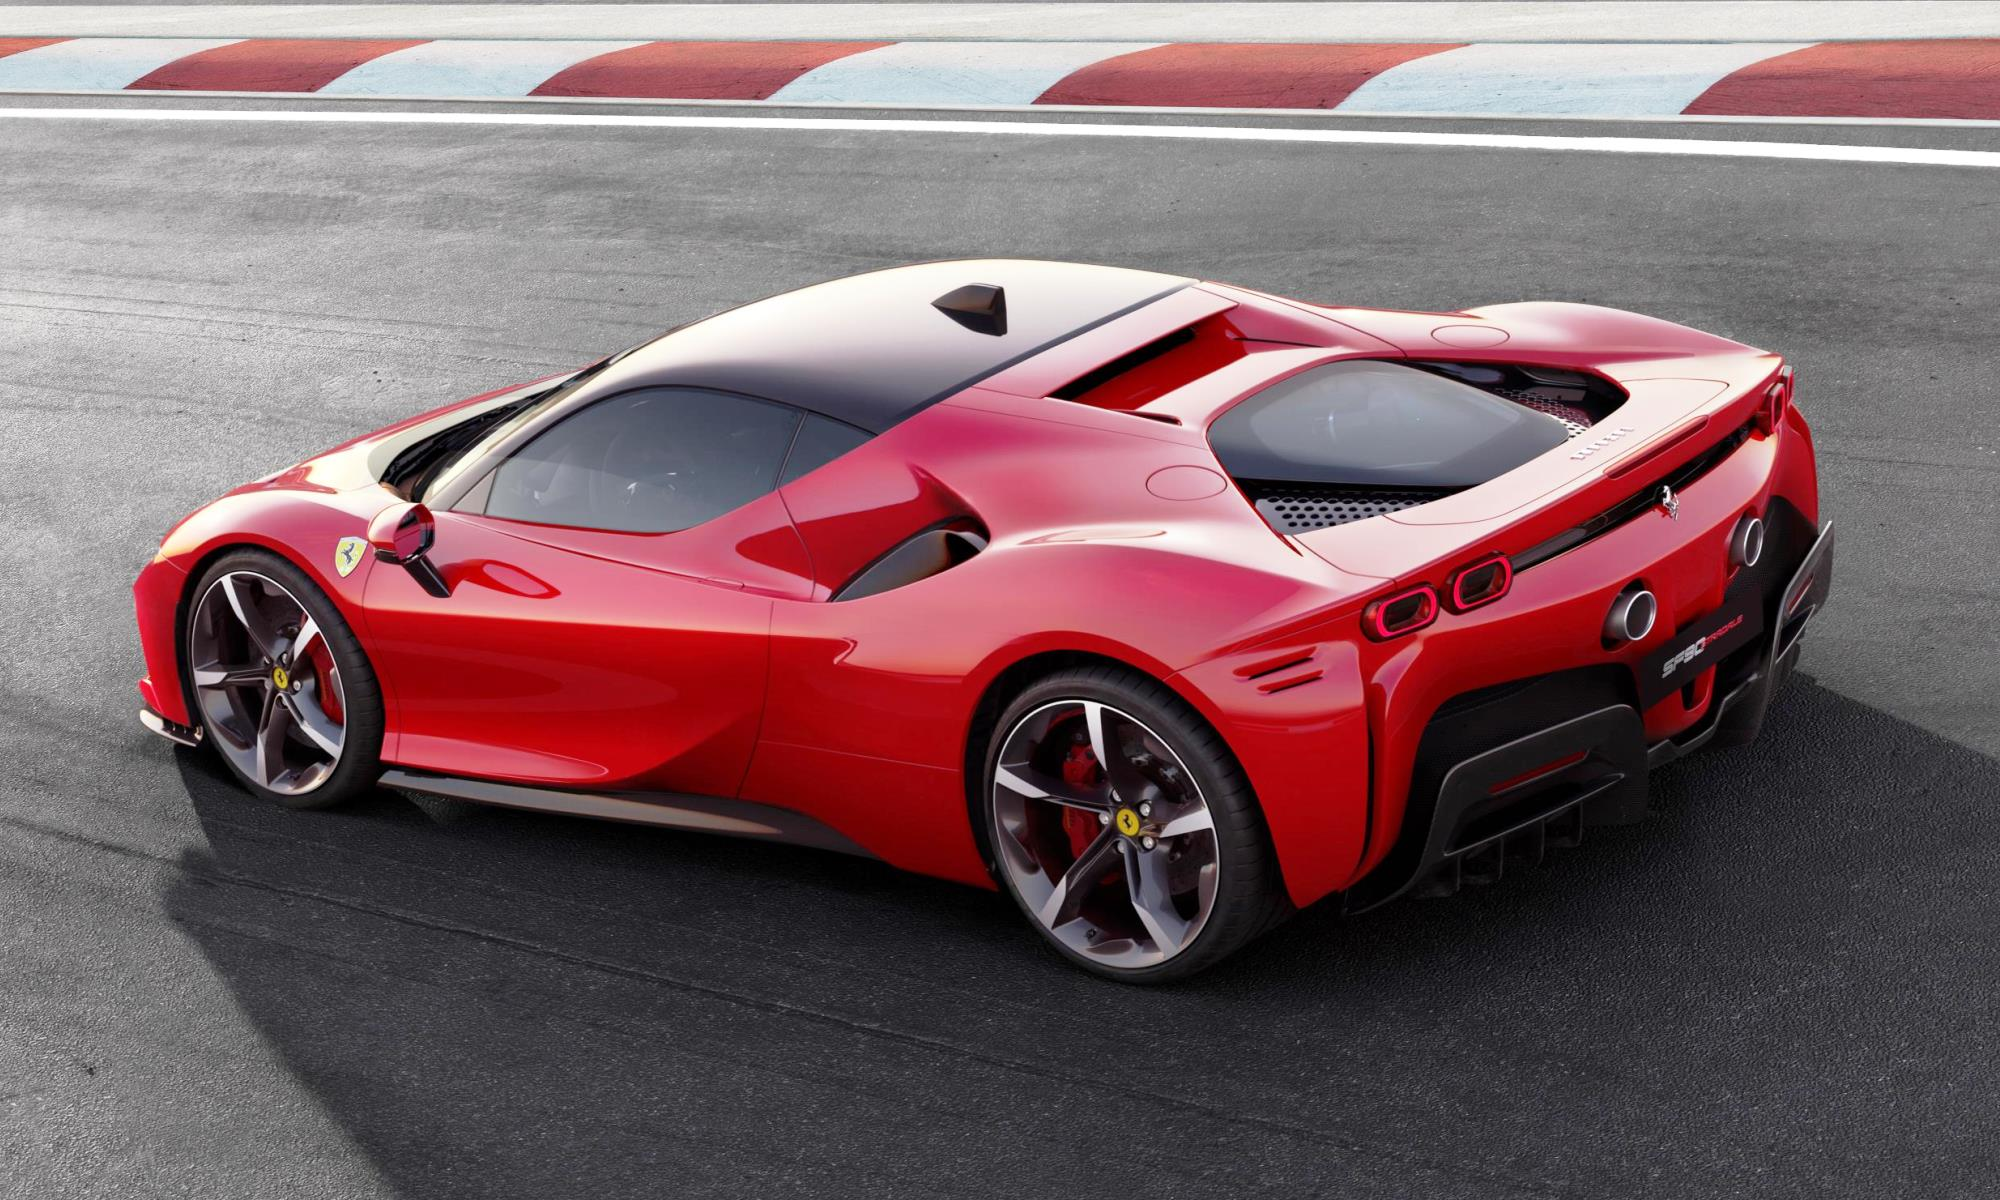 Ferrari SF90 Stradale side